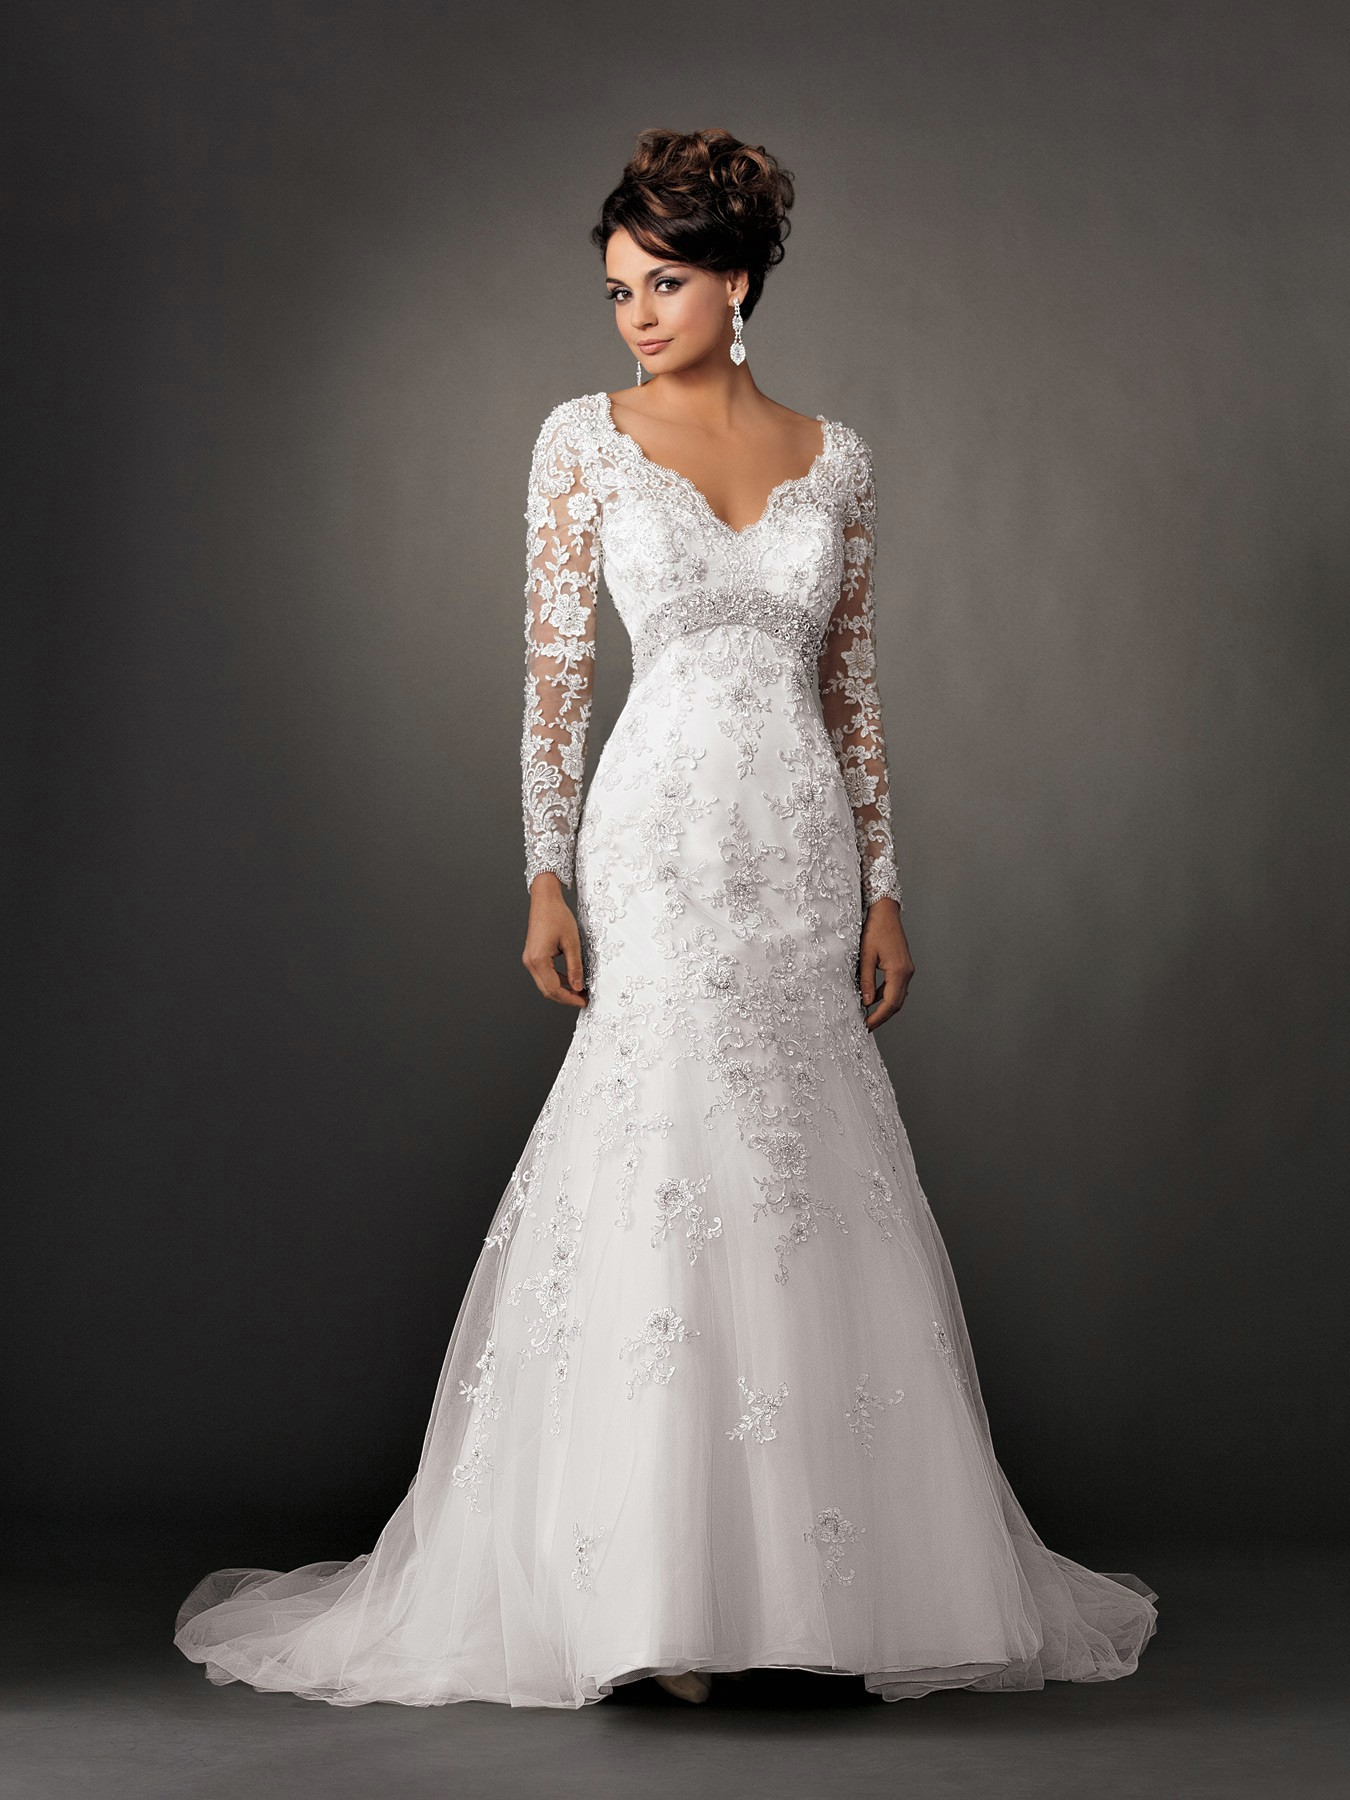 lace wedding dresses with sleeves photo - 1